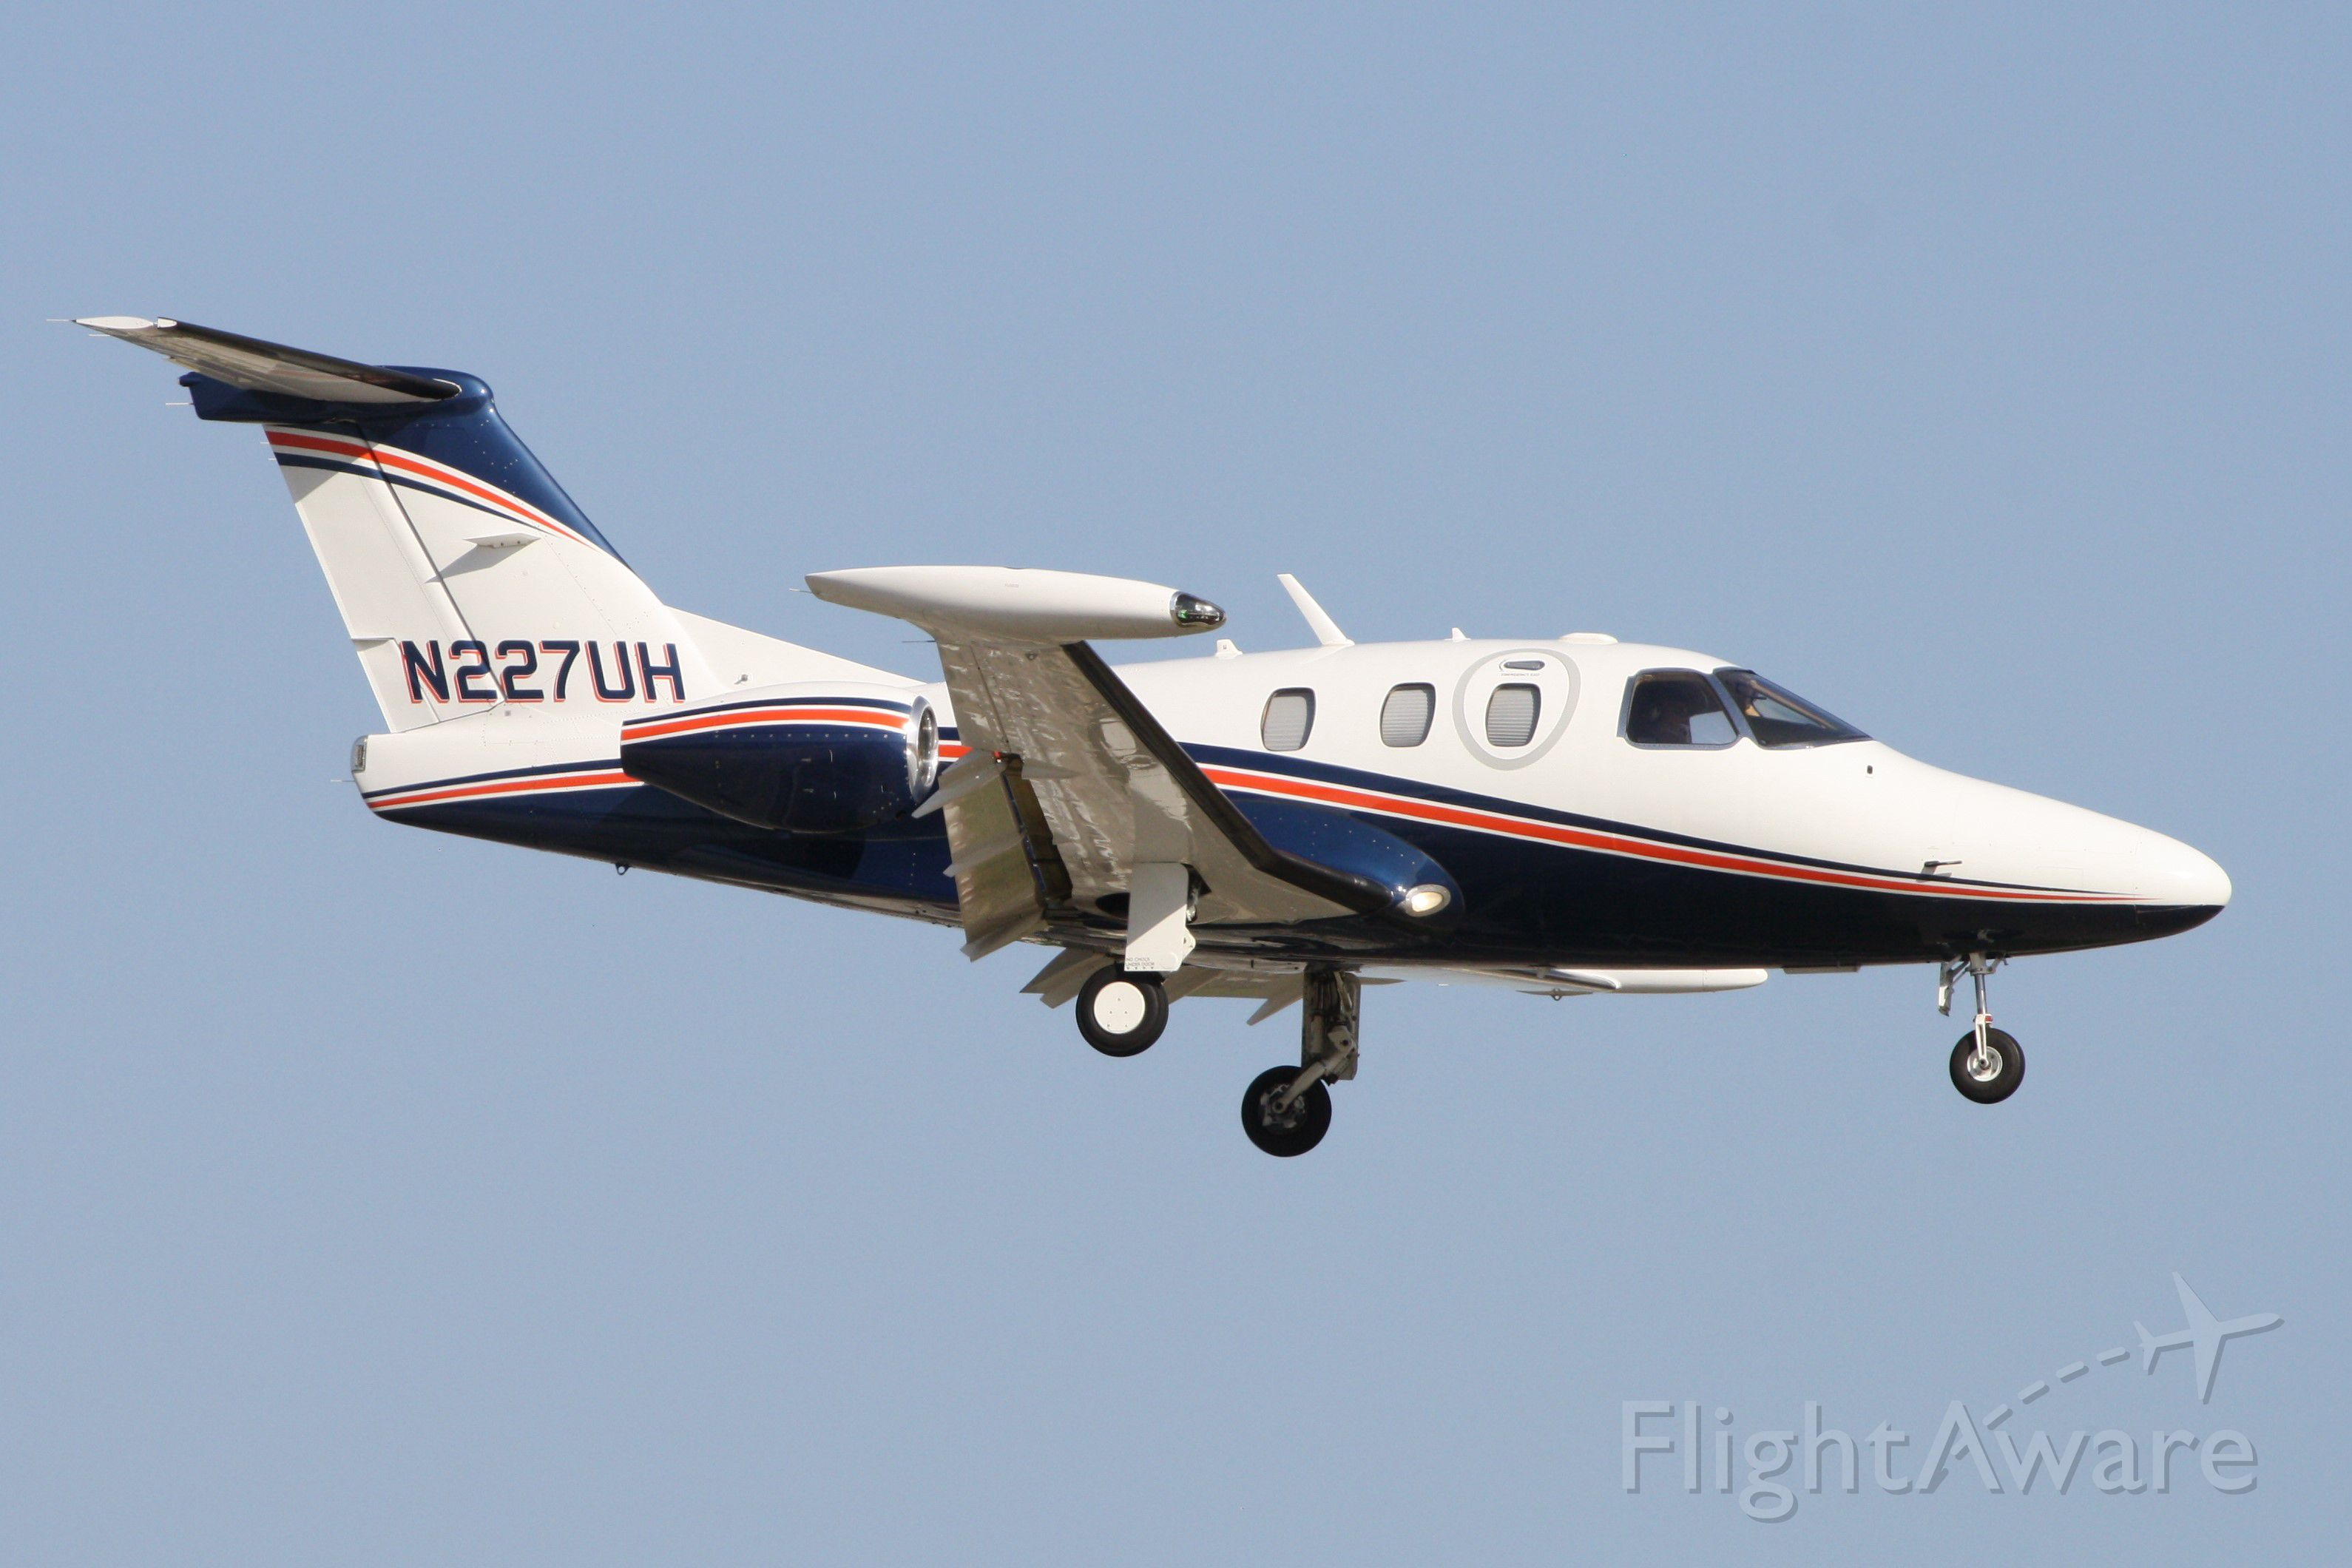 Eclipse 500 (N227UH) - Landing at John Wayne Airport 9/24/19.